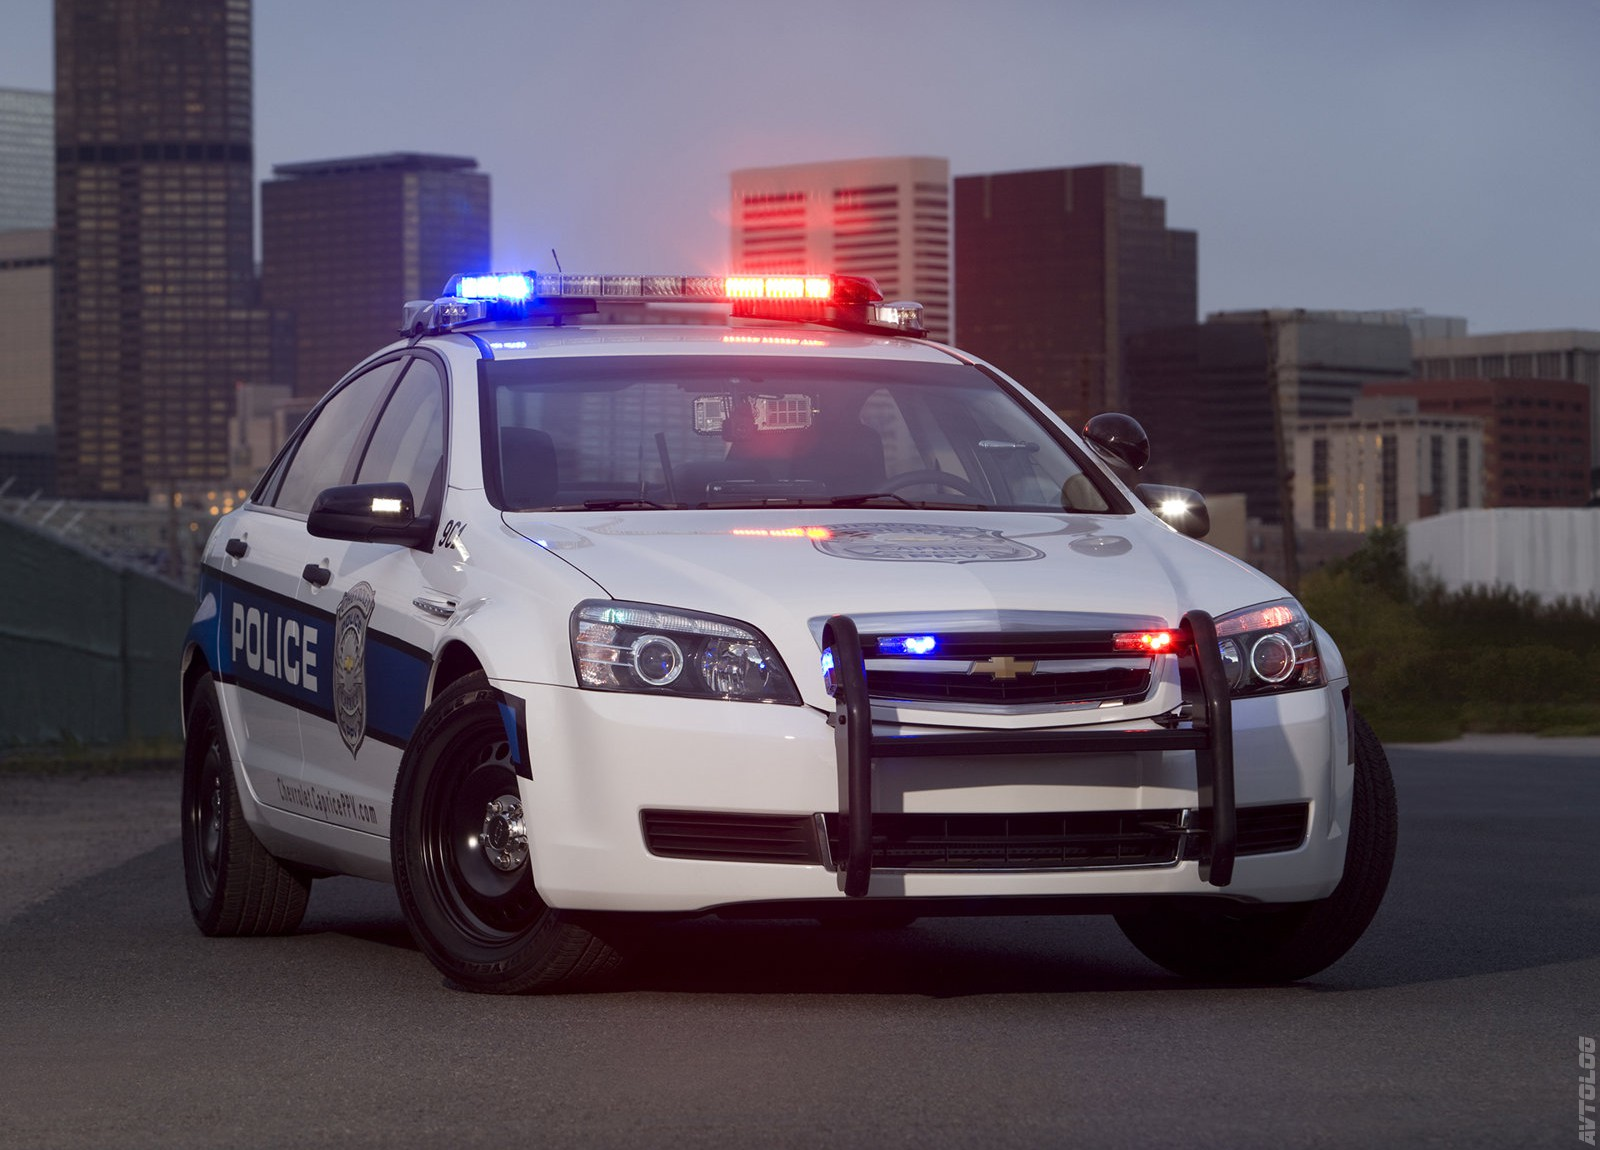 2011 Chevrolet Caprice Police Patrol Vehicle photo - 1